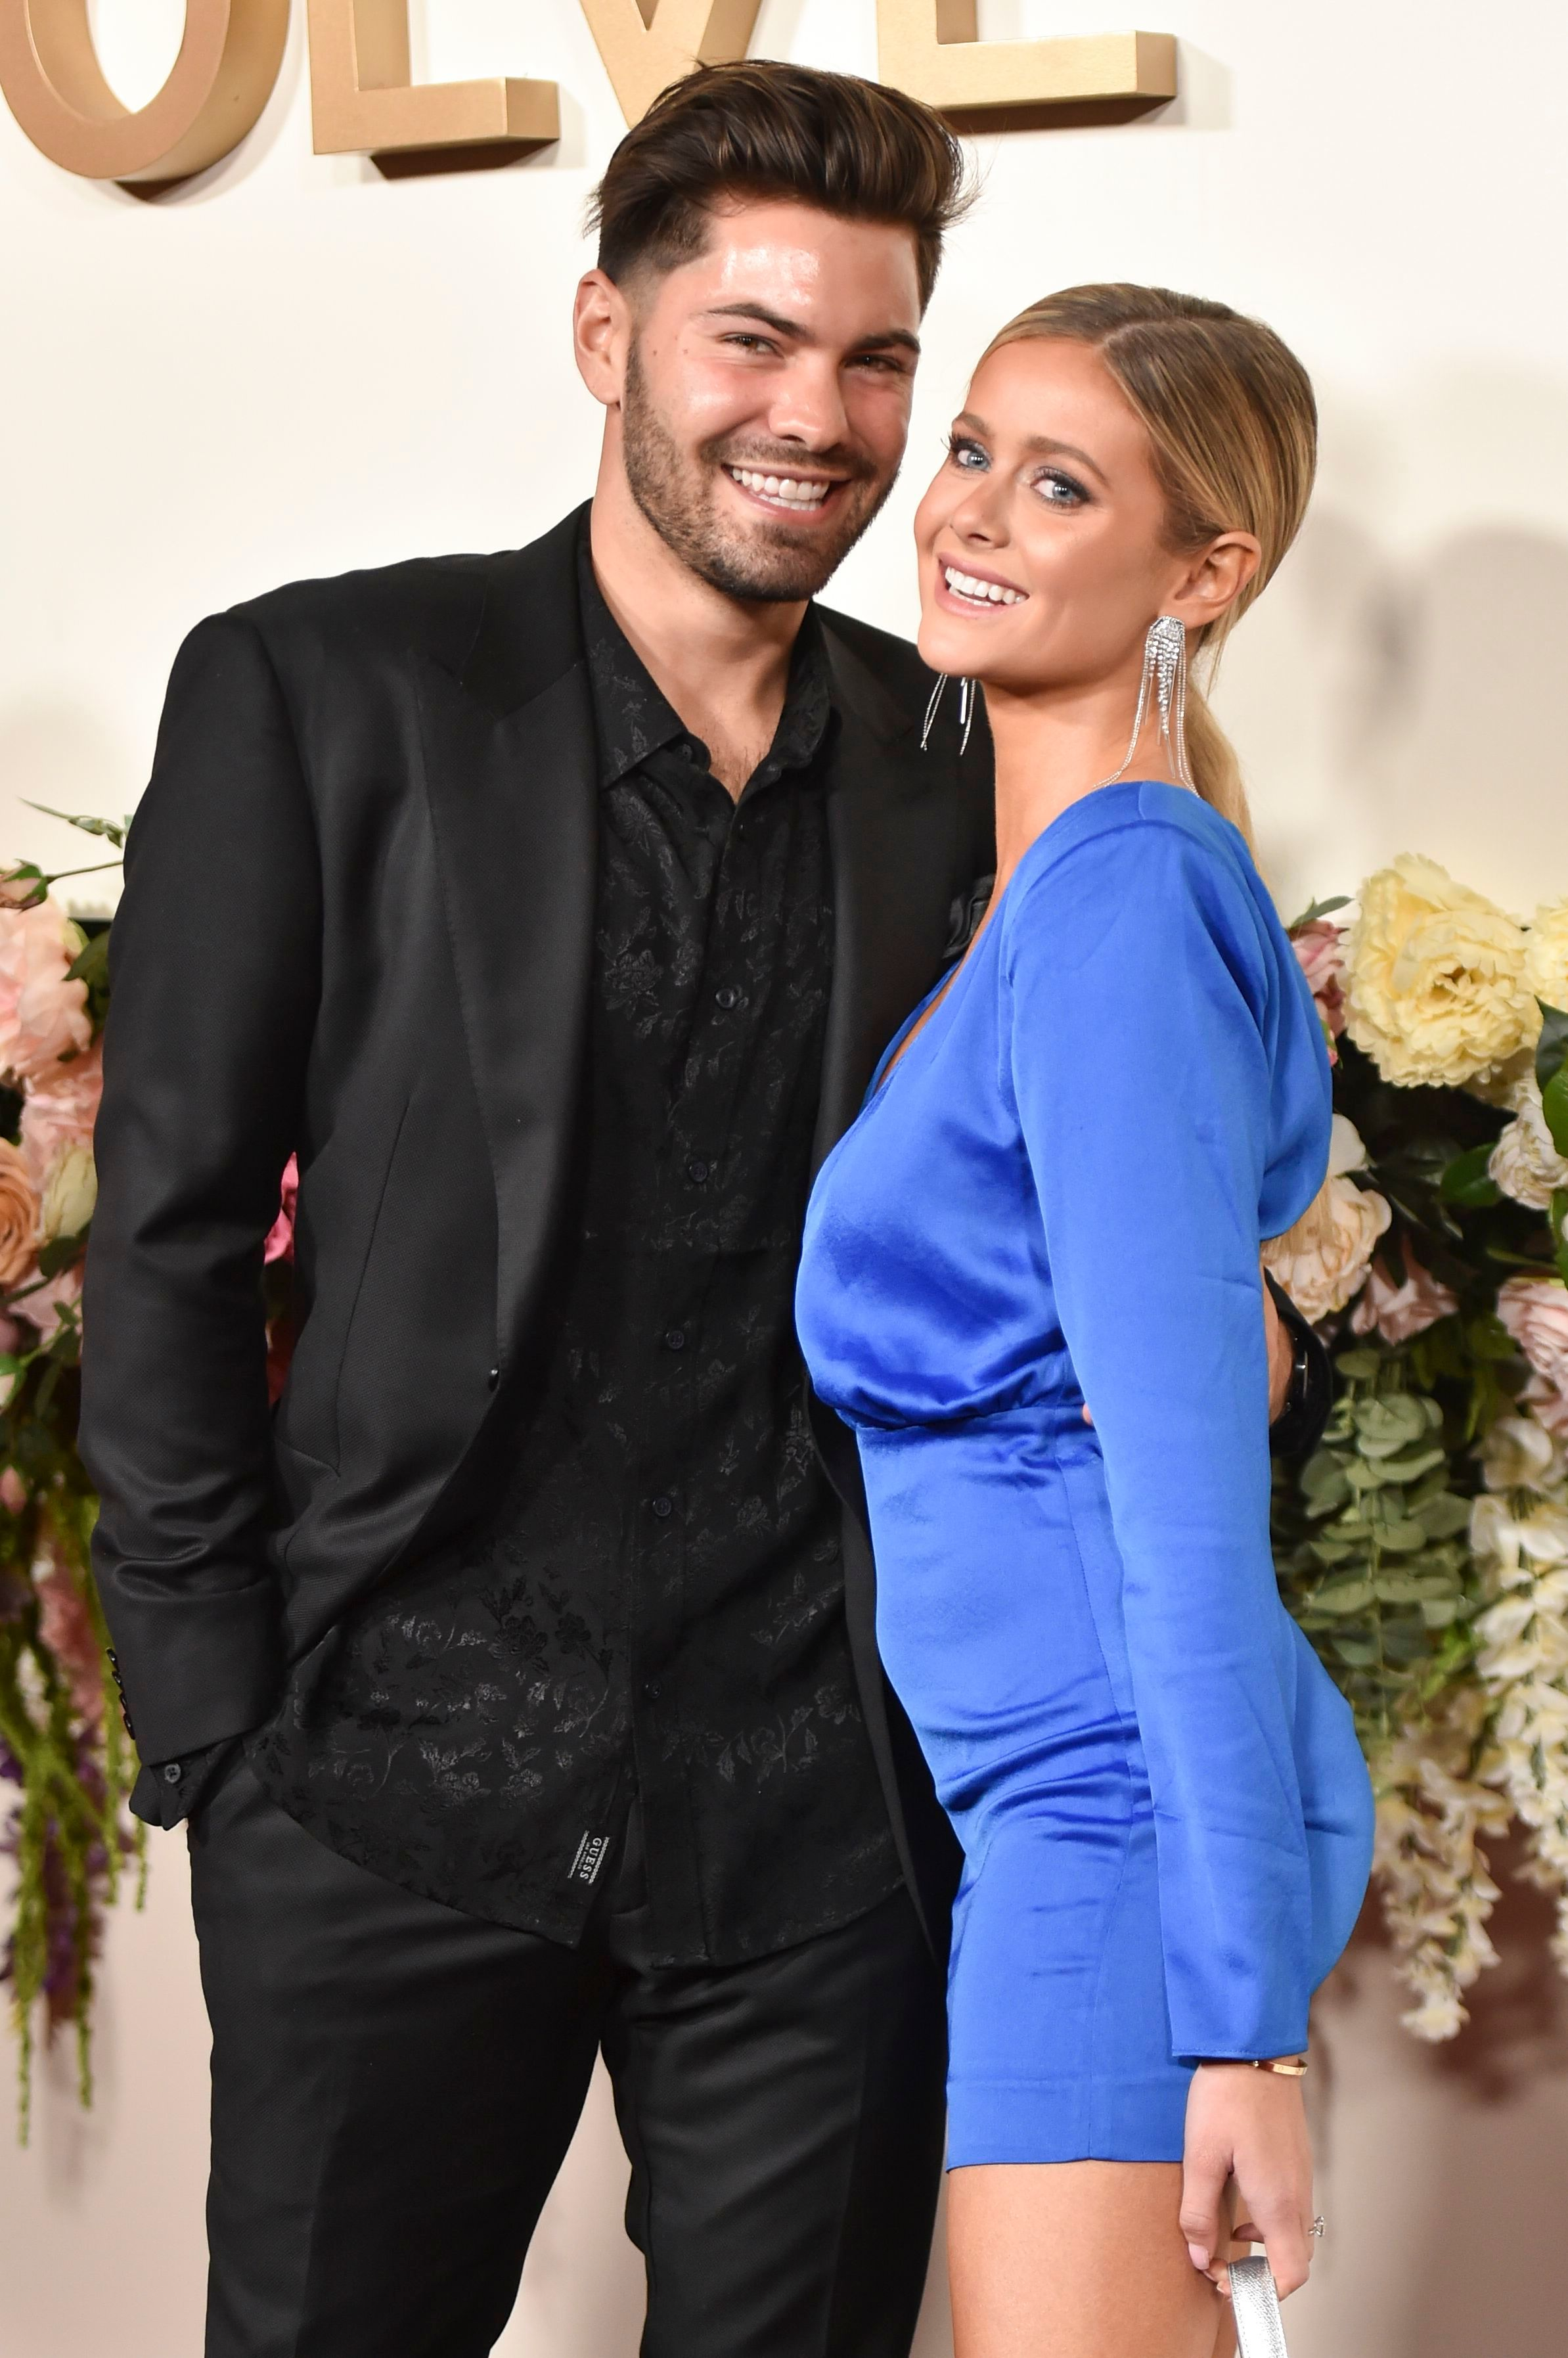 'Bachelor in Paradise' Alum Hannah Godwin Defends Not Being 'Into PDA' With Boyfriend Dylan Barbour